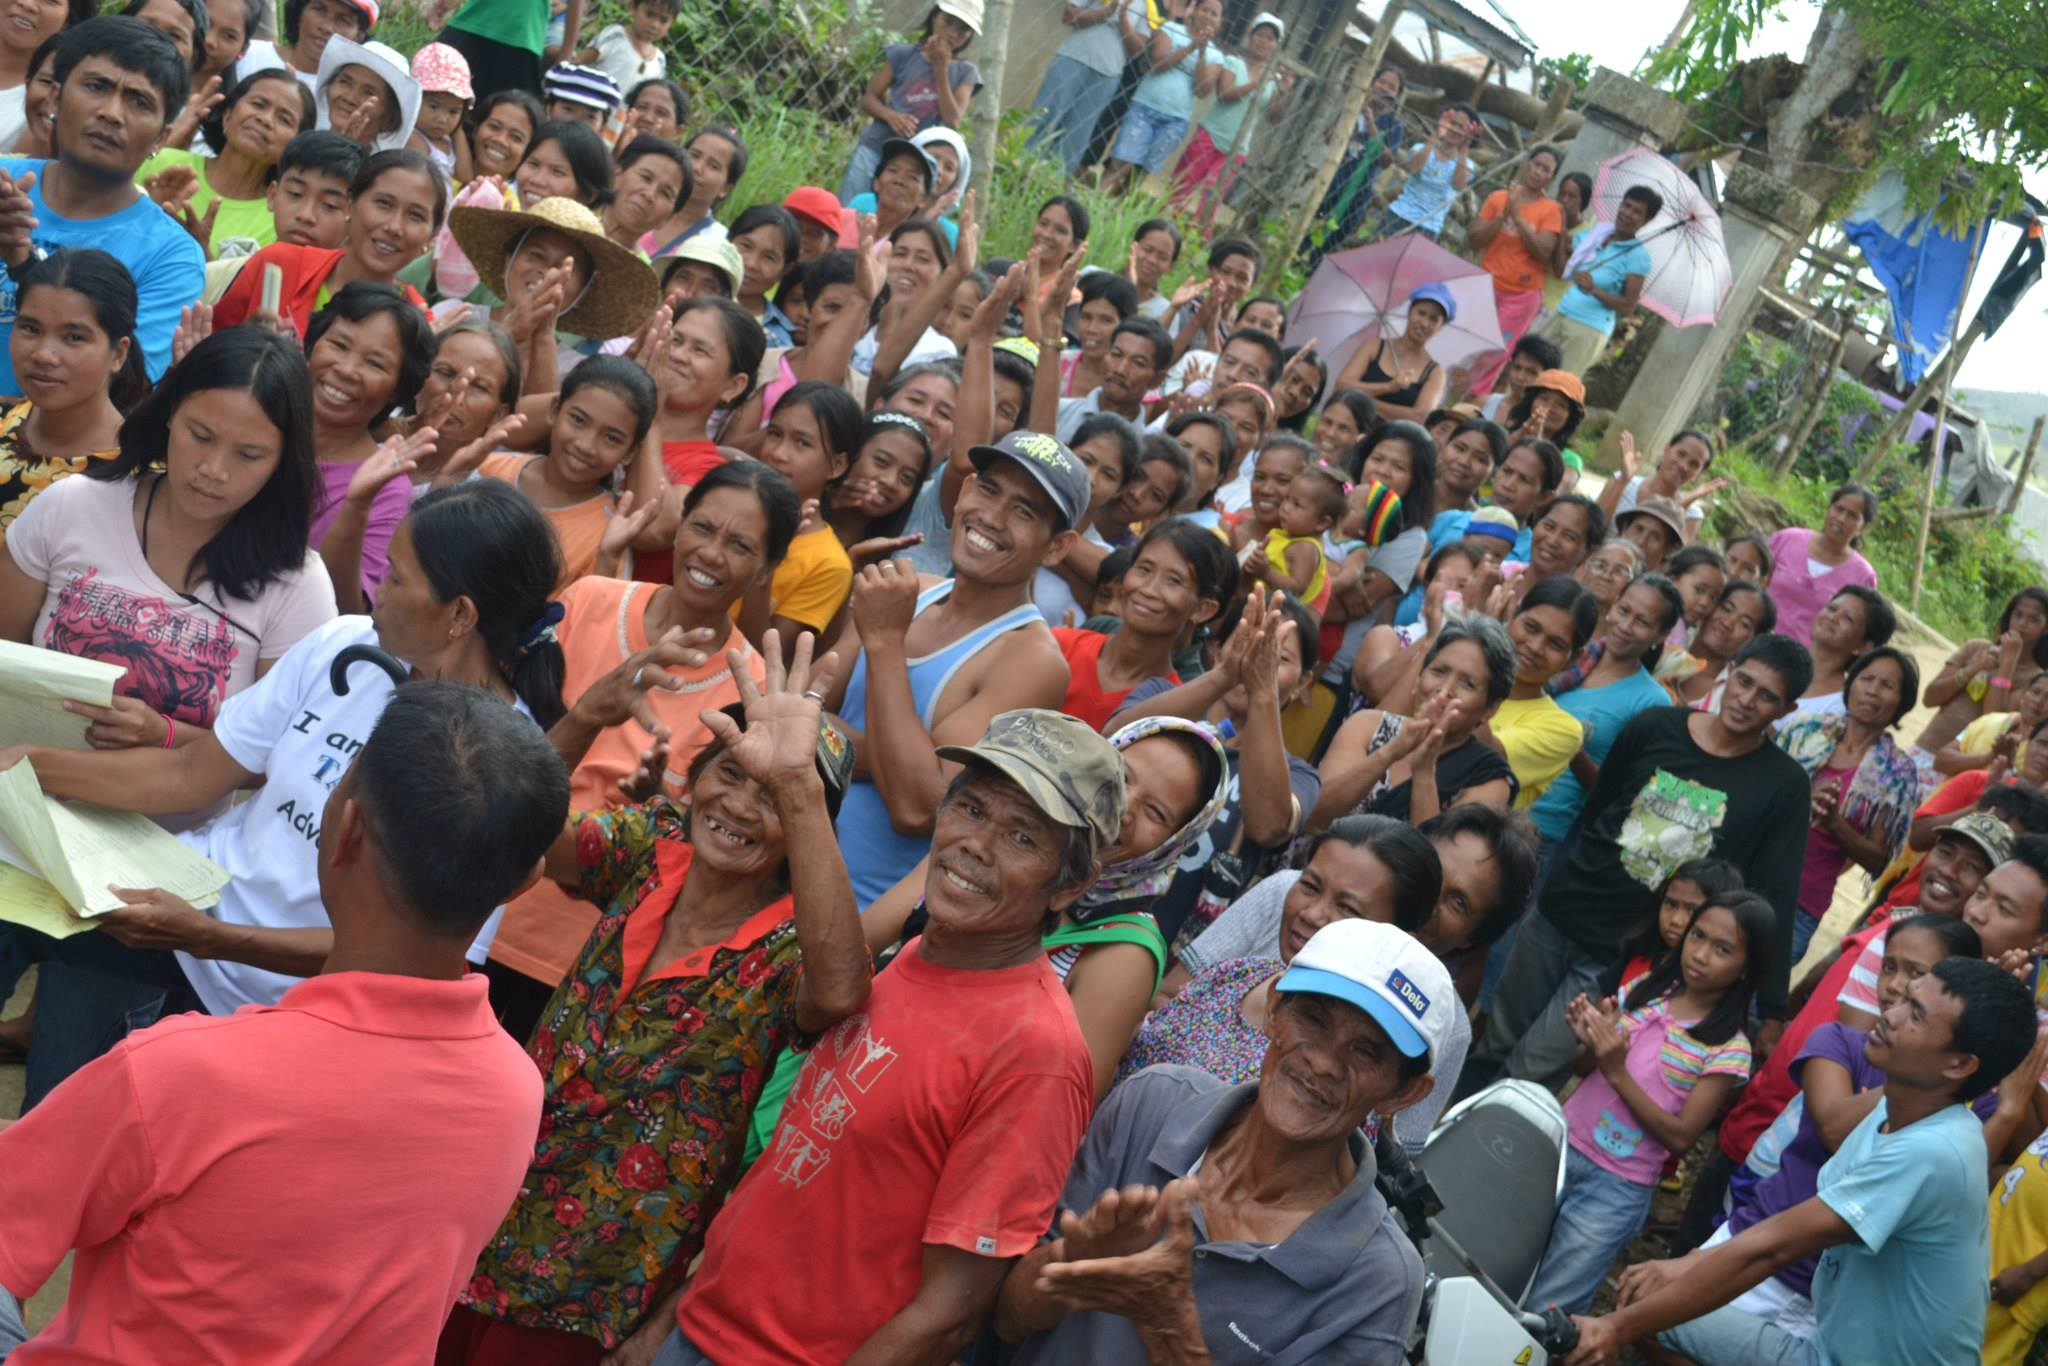 The trademark resilience of the Pilipino smile, courtesy of the residents of Barangay Bulak Sur, Batad, Iloilo province.